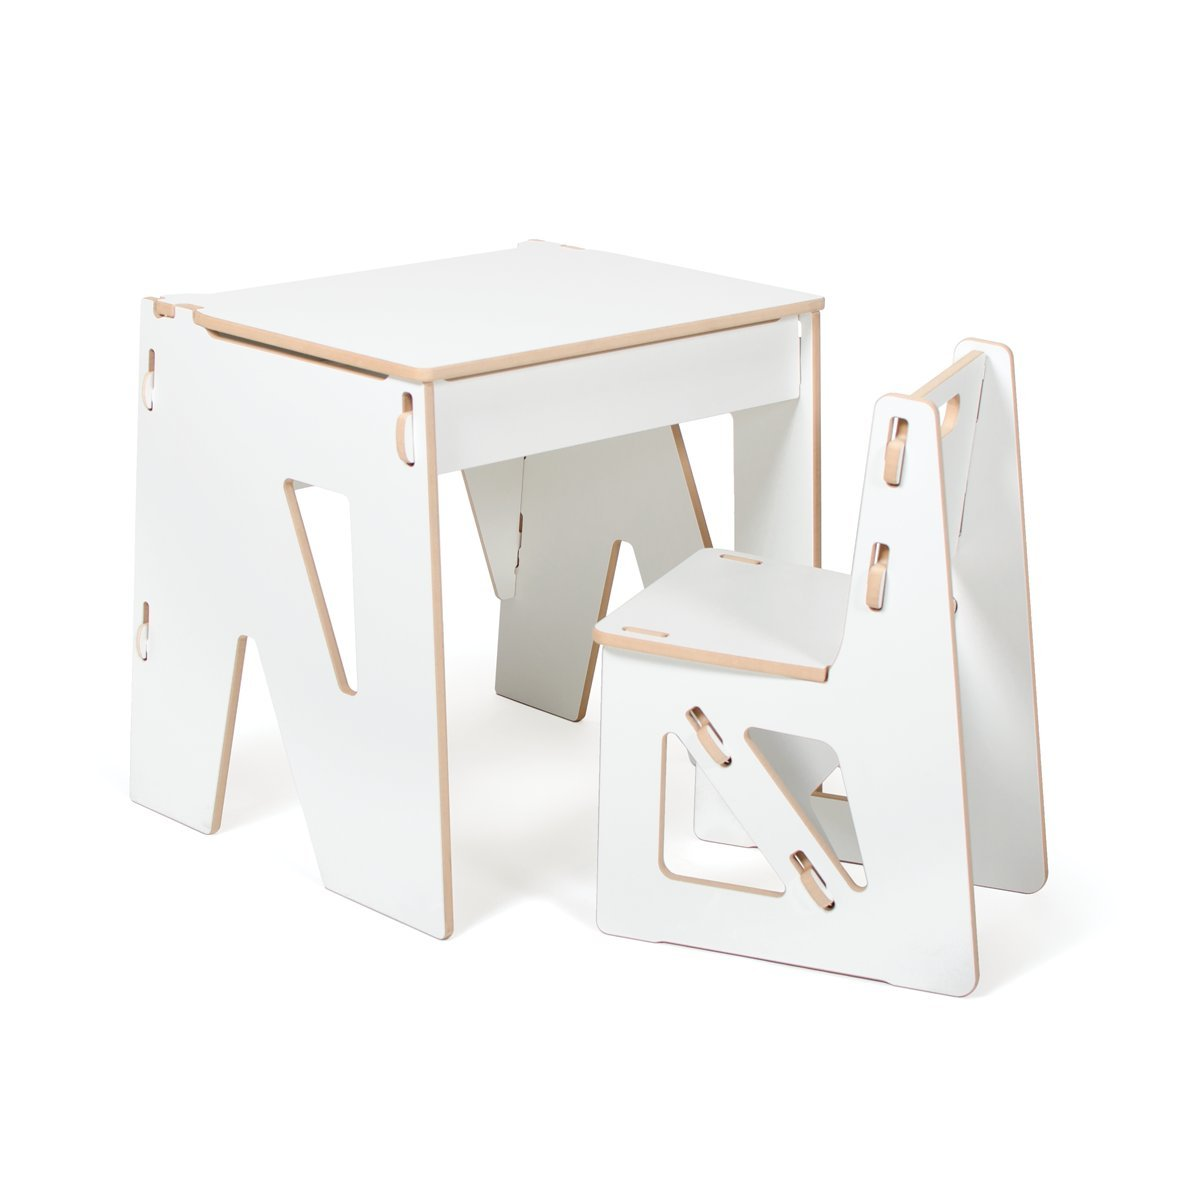 White Modern Kids Desk and Chair with Storage, American Made